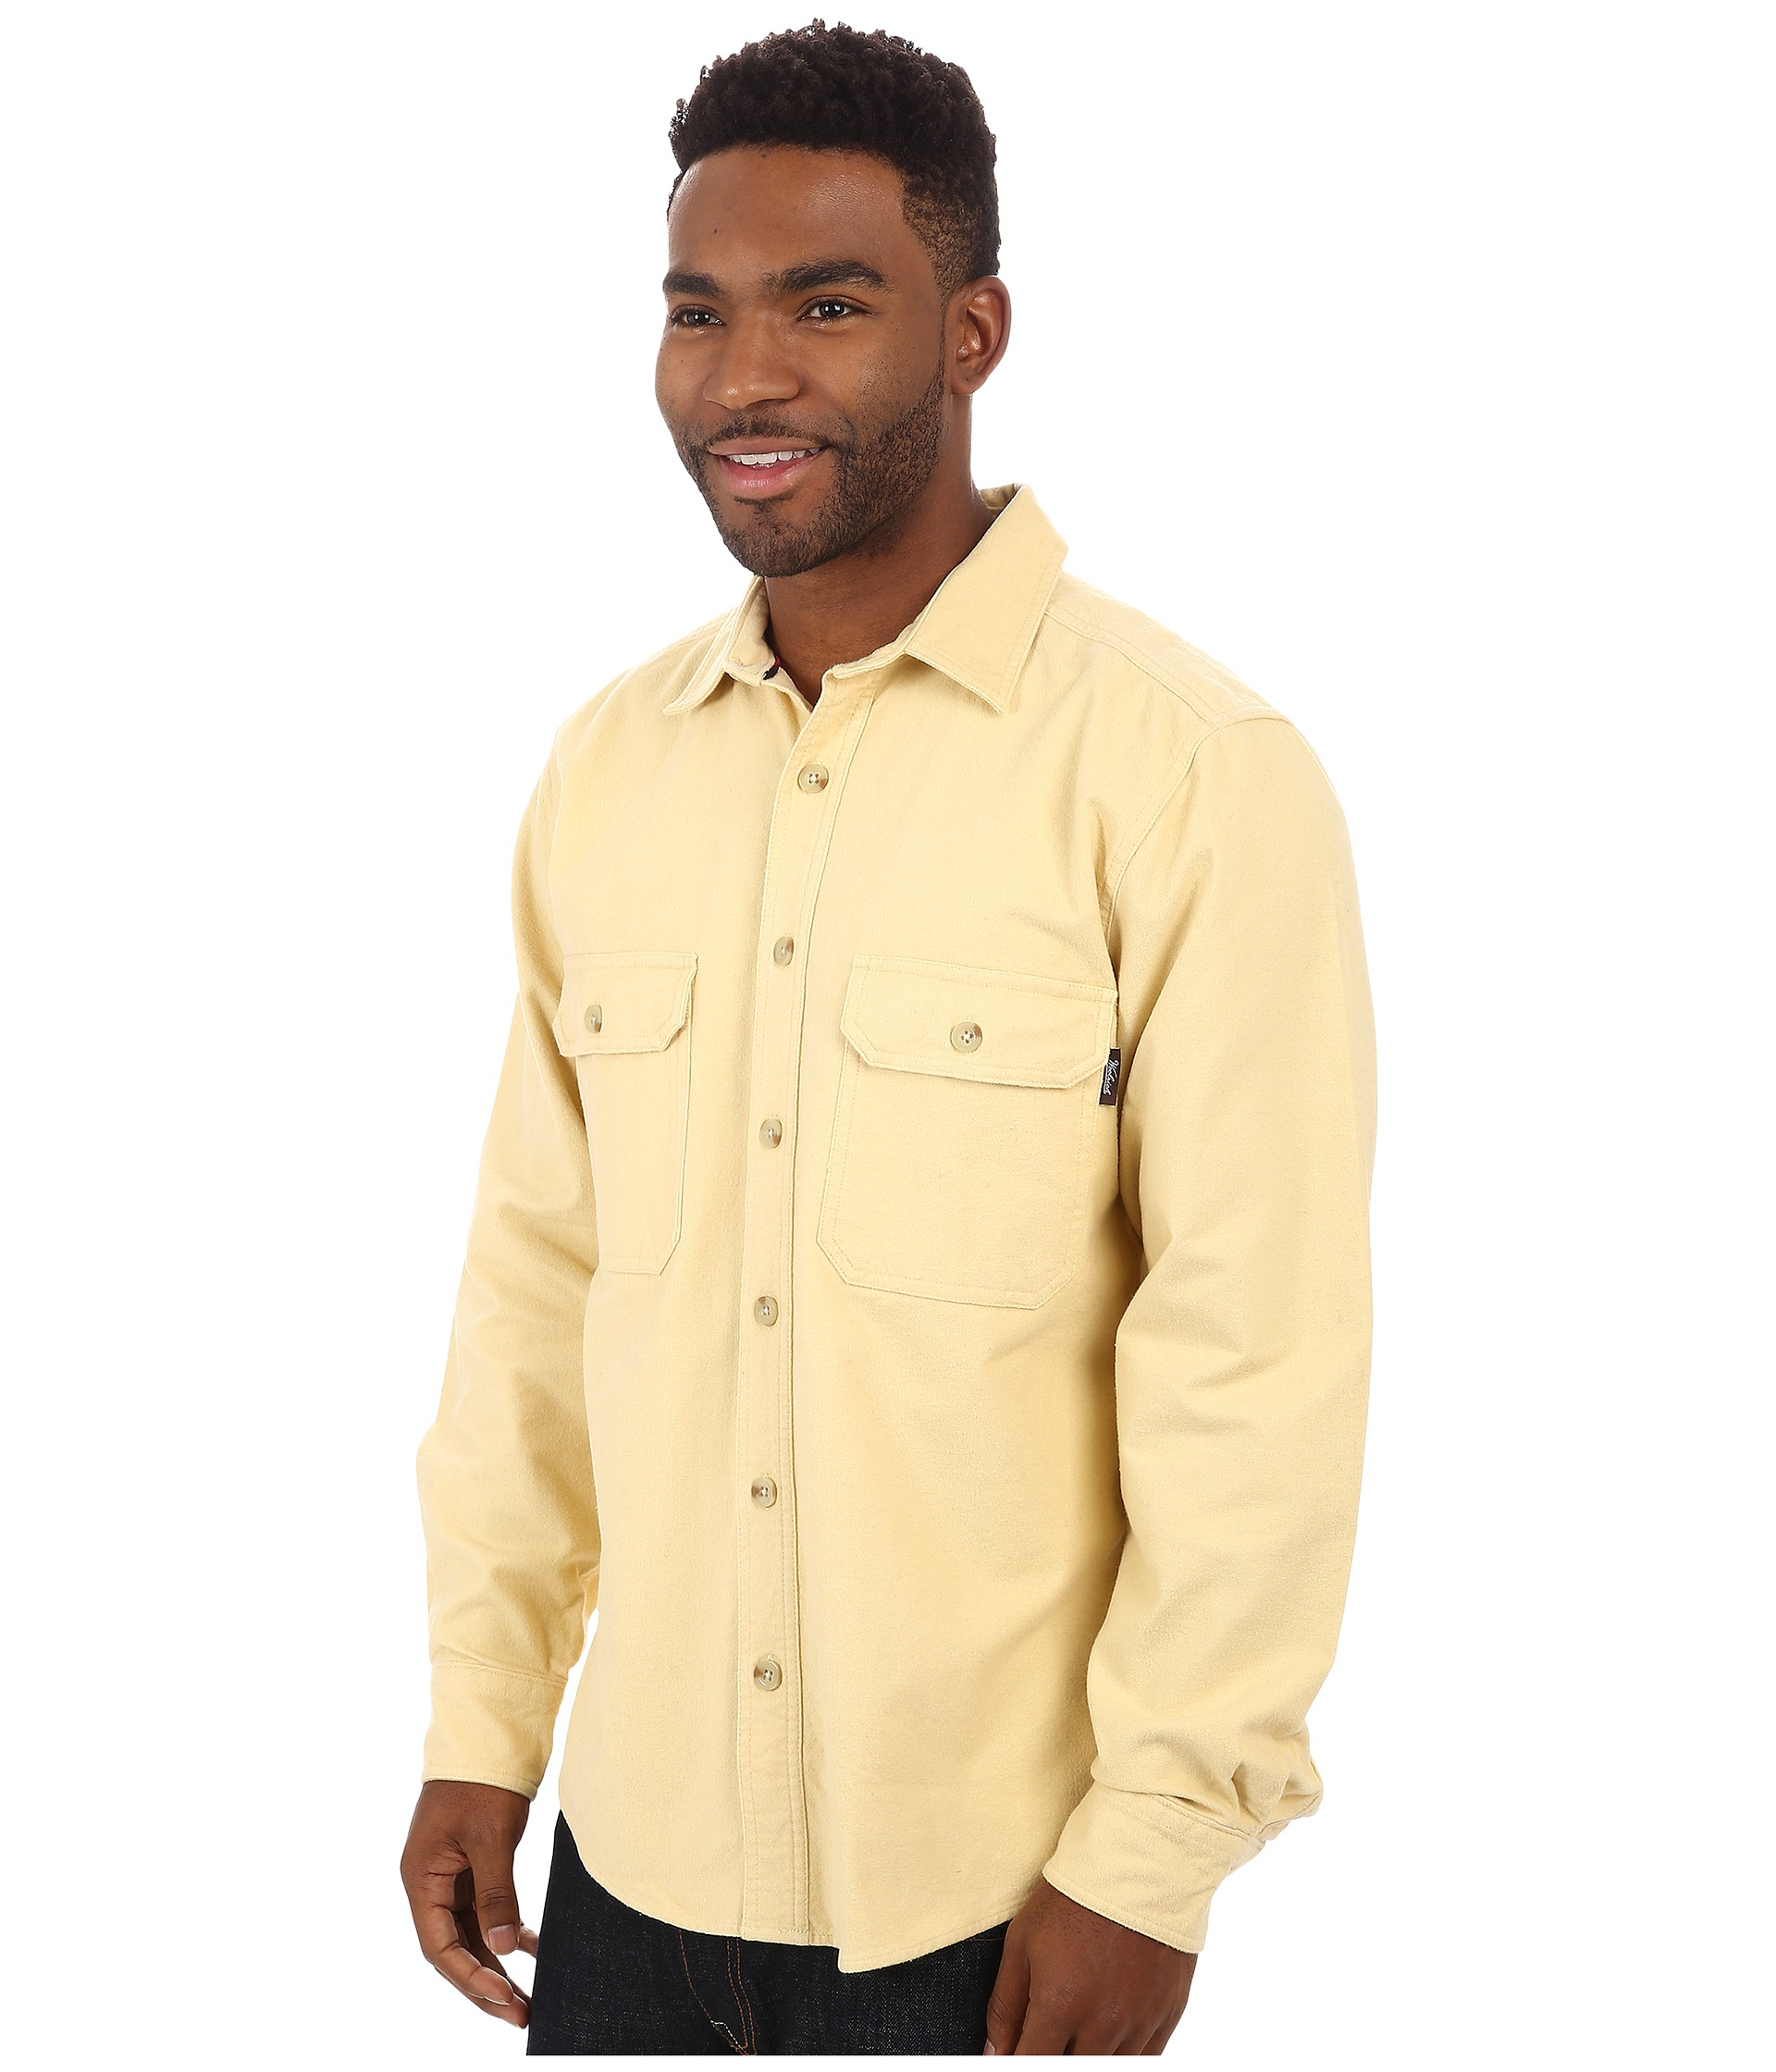 chamois guys Find chamois shirt at shopstyle shop the latest collection of chamois shirt from the most popular stores - all in one place.